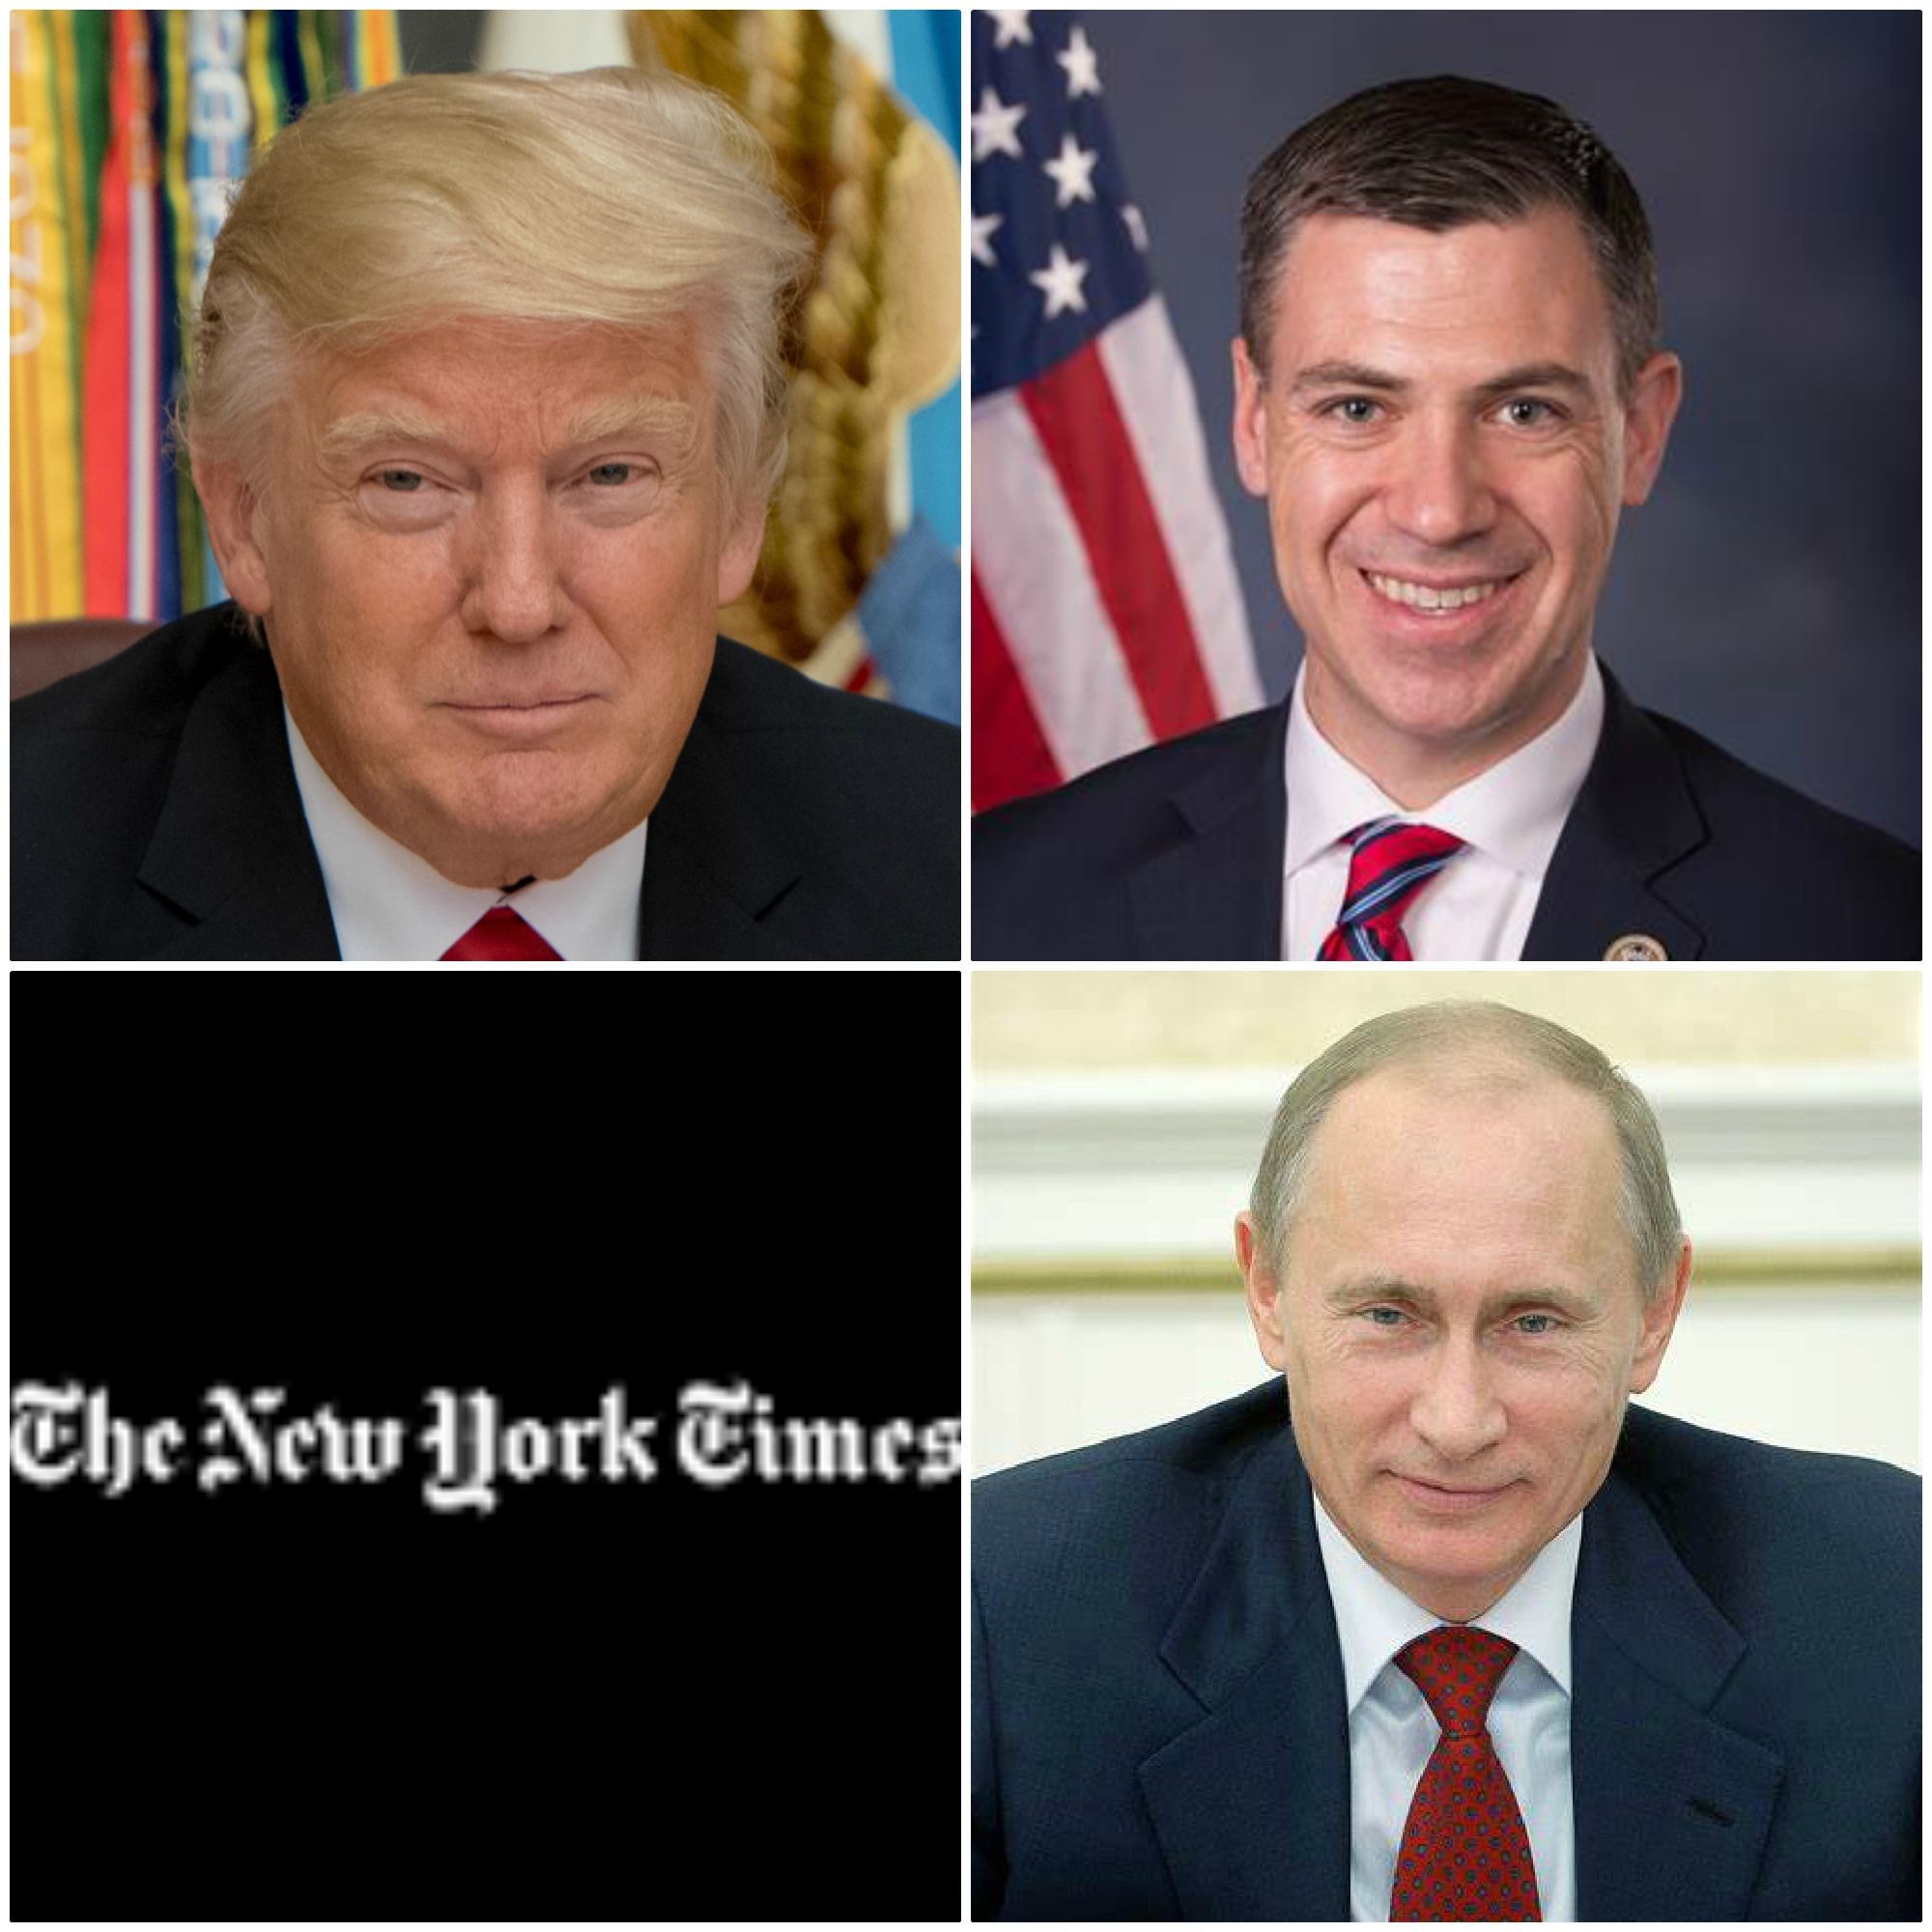 Representative Jim Banks:  New York Times Used Unconfirmed Intel In An Ongoing Investigation